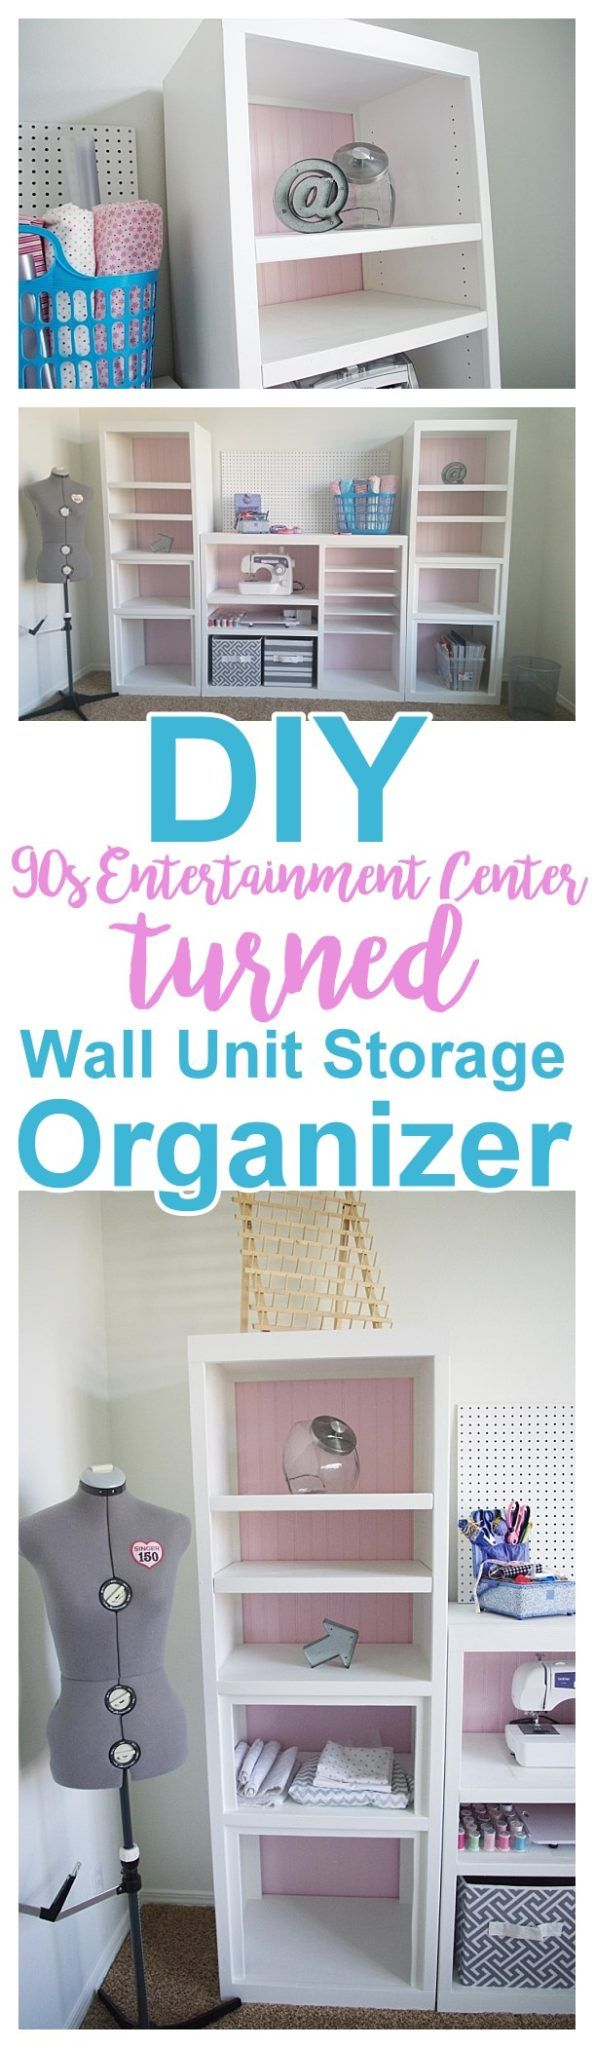 Diy craft room wall storage organizer unit furniture makeover diy 90s ugly entertainment center makeover pretty craft storage organizer wall unit solutioingenieria Gallery